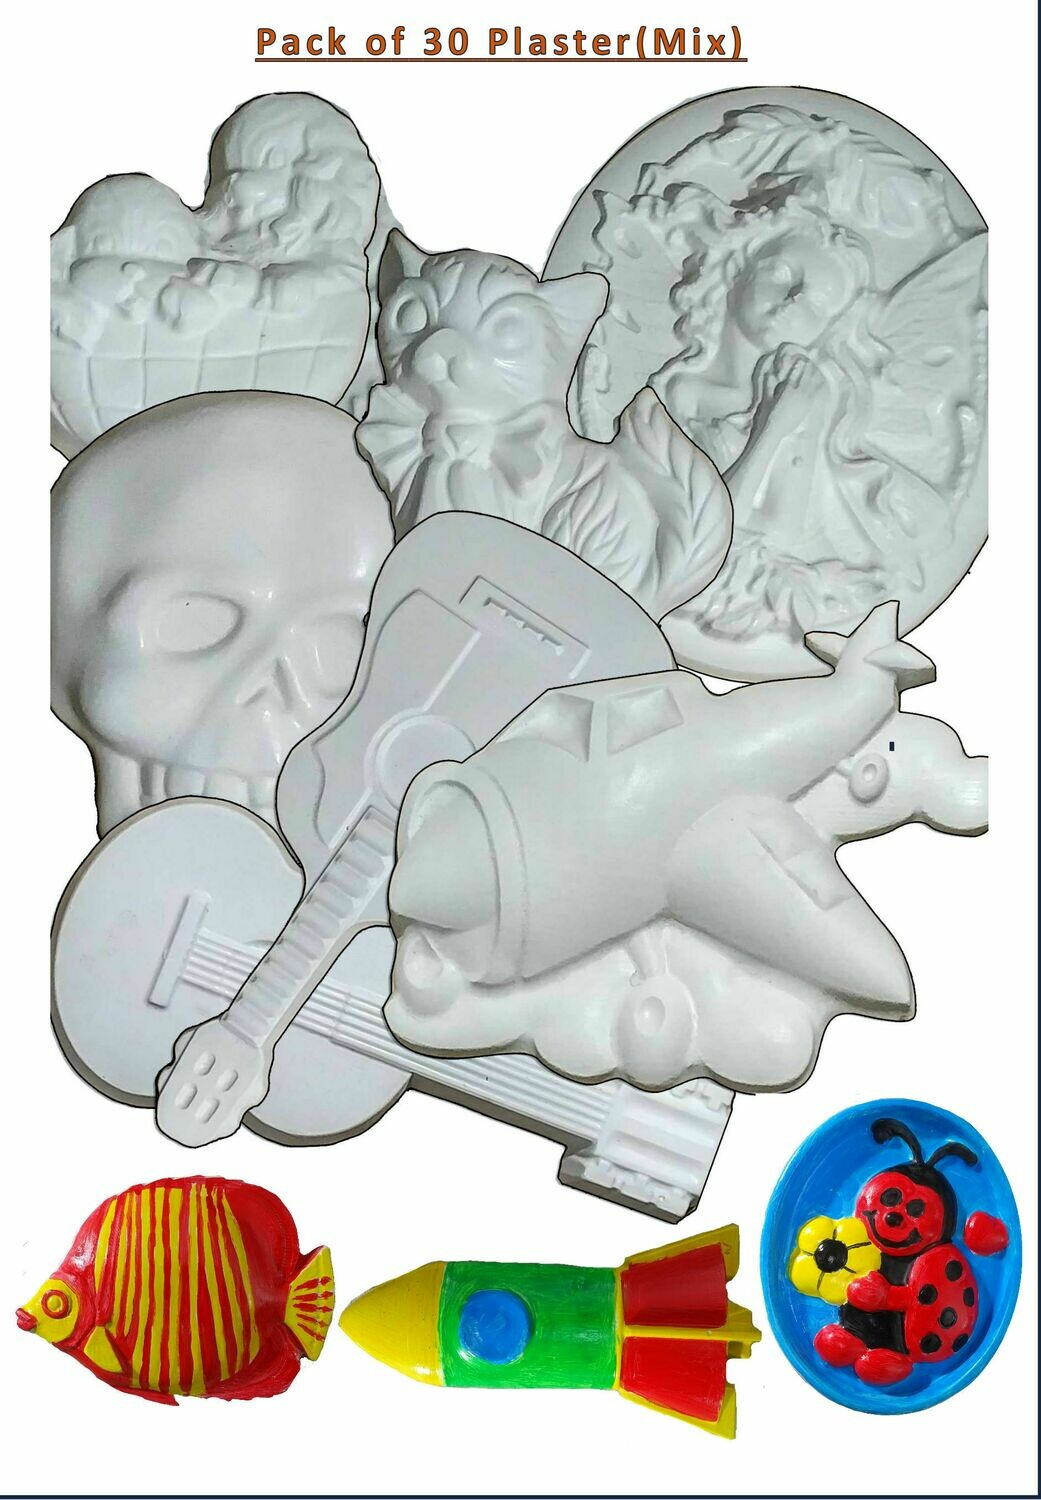 Pack of 30 Plaster (Mix)